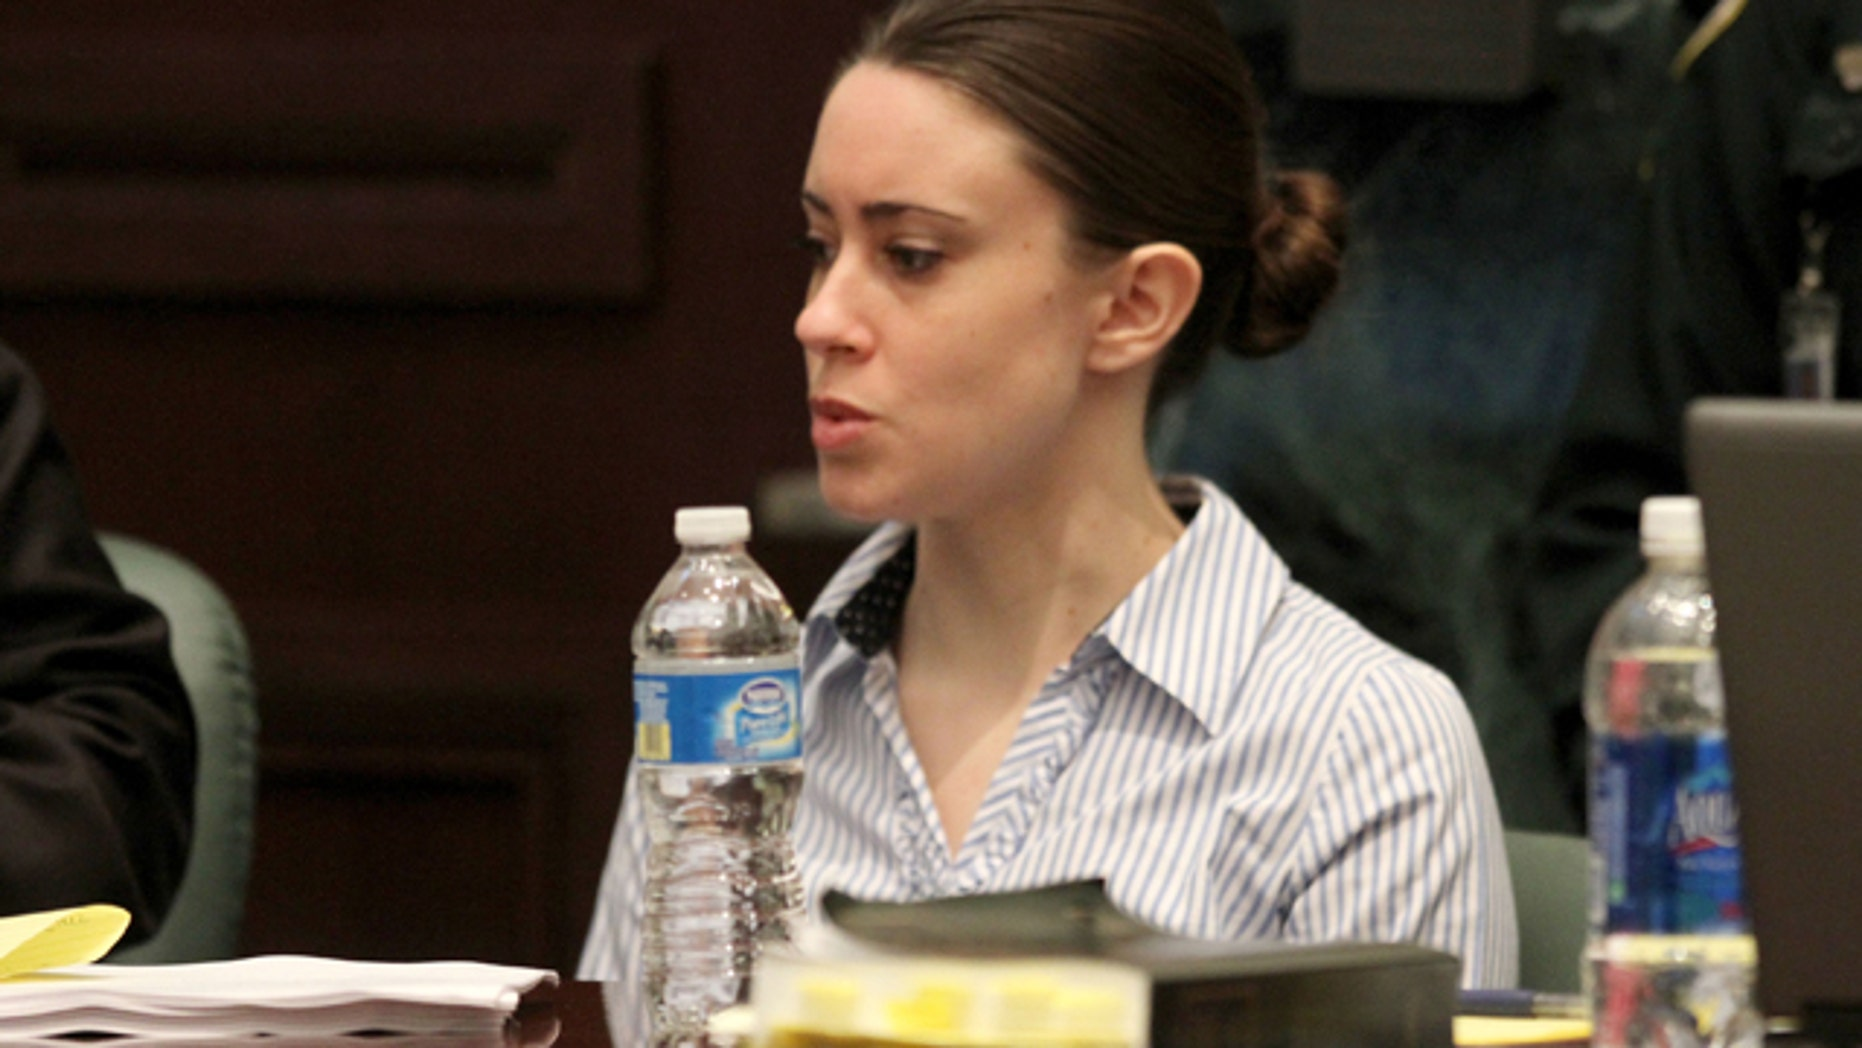 A computer expert who testified in the Casey Anthony trial refused Wednesday to comment on a newspaper report that said he claims evidence offered about extensive chloroform searches on the family's computer was inaccurate.